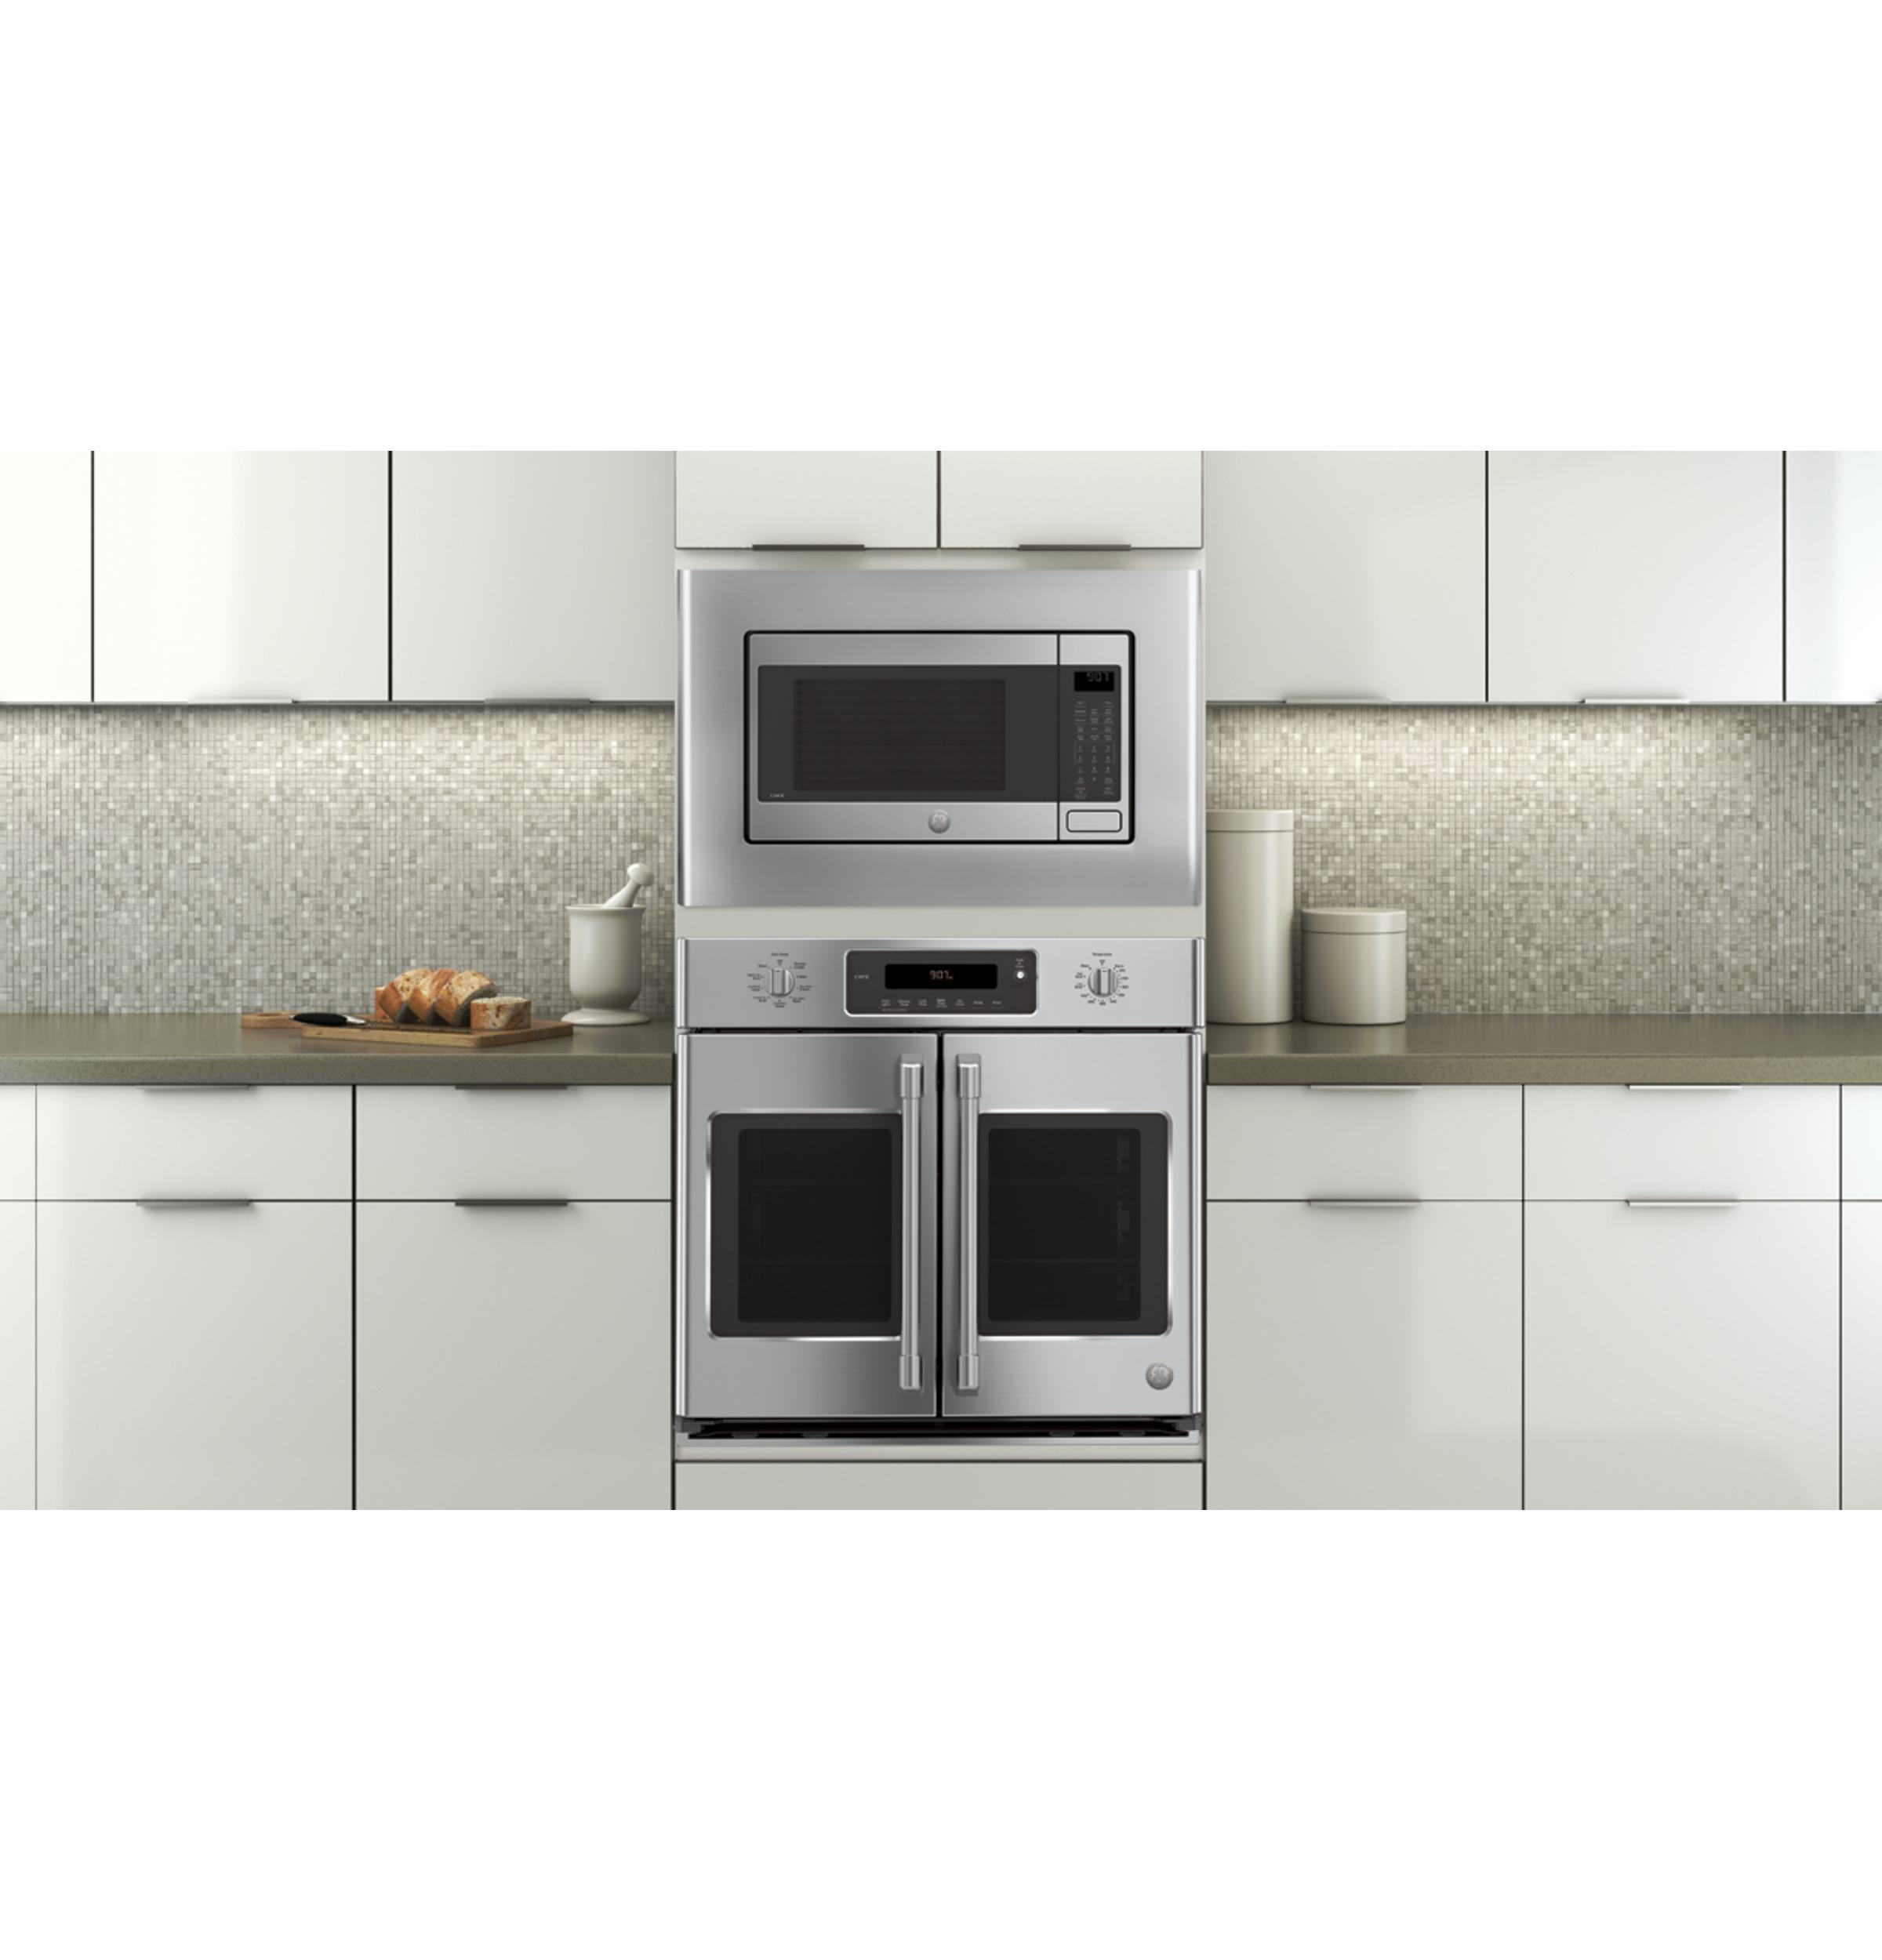 convection requesttype ge countertops gea profile countertop ovens appliance oven microwave dispatcher name specs image product